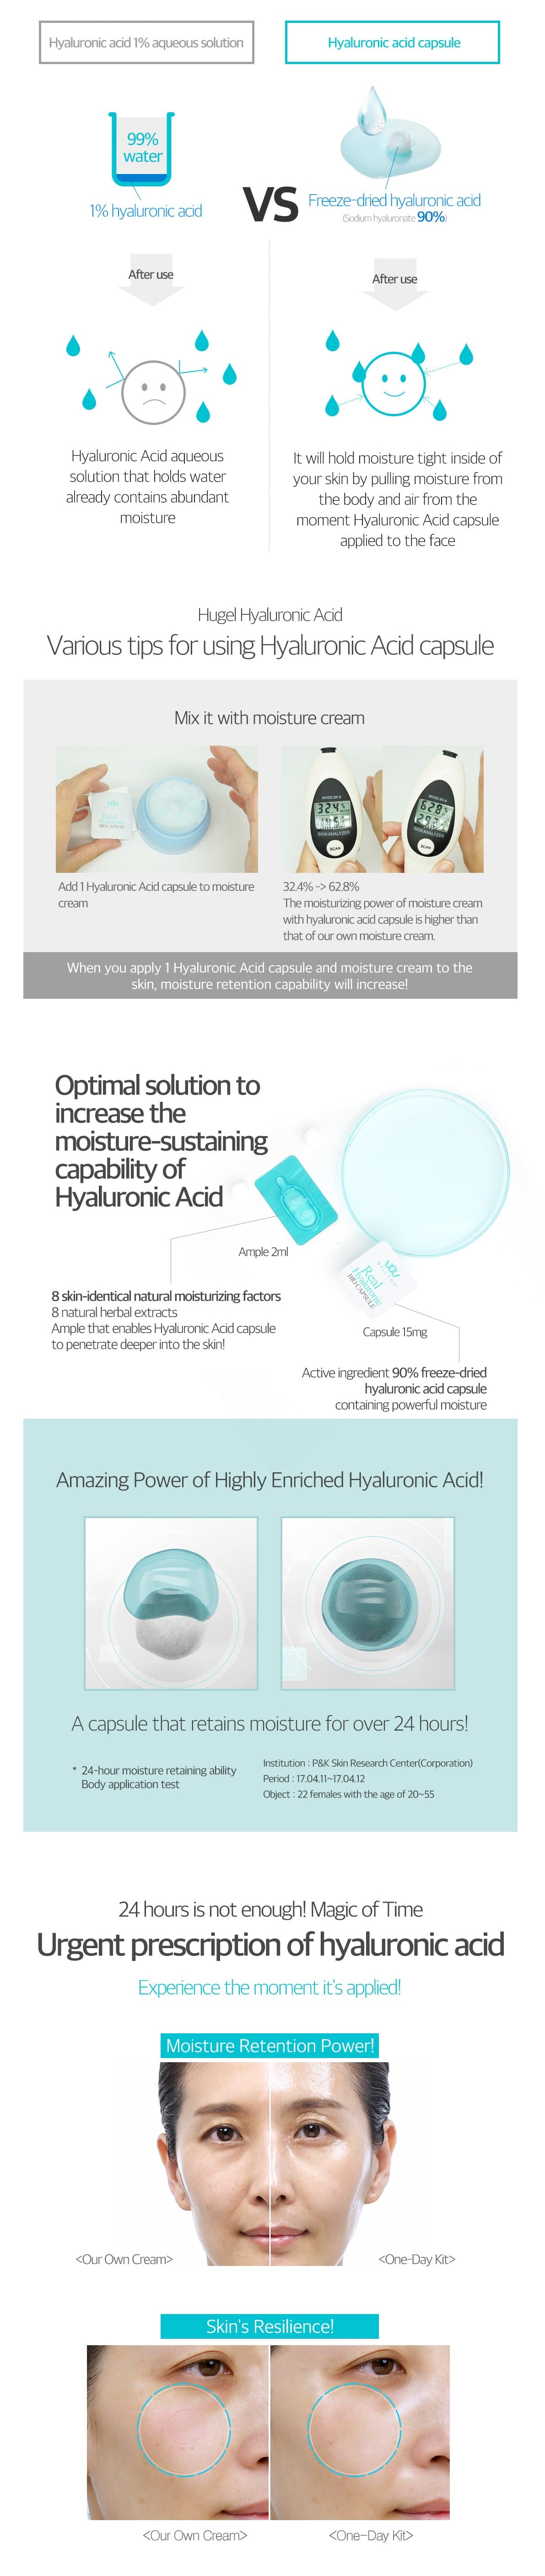 Wellage Real Hyaluronic BIO Capsule Blue Solution